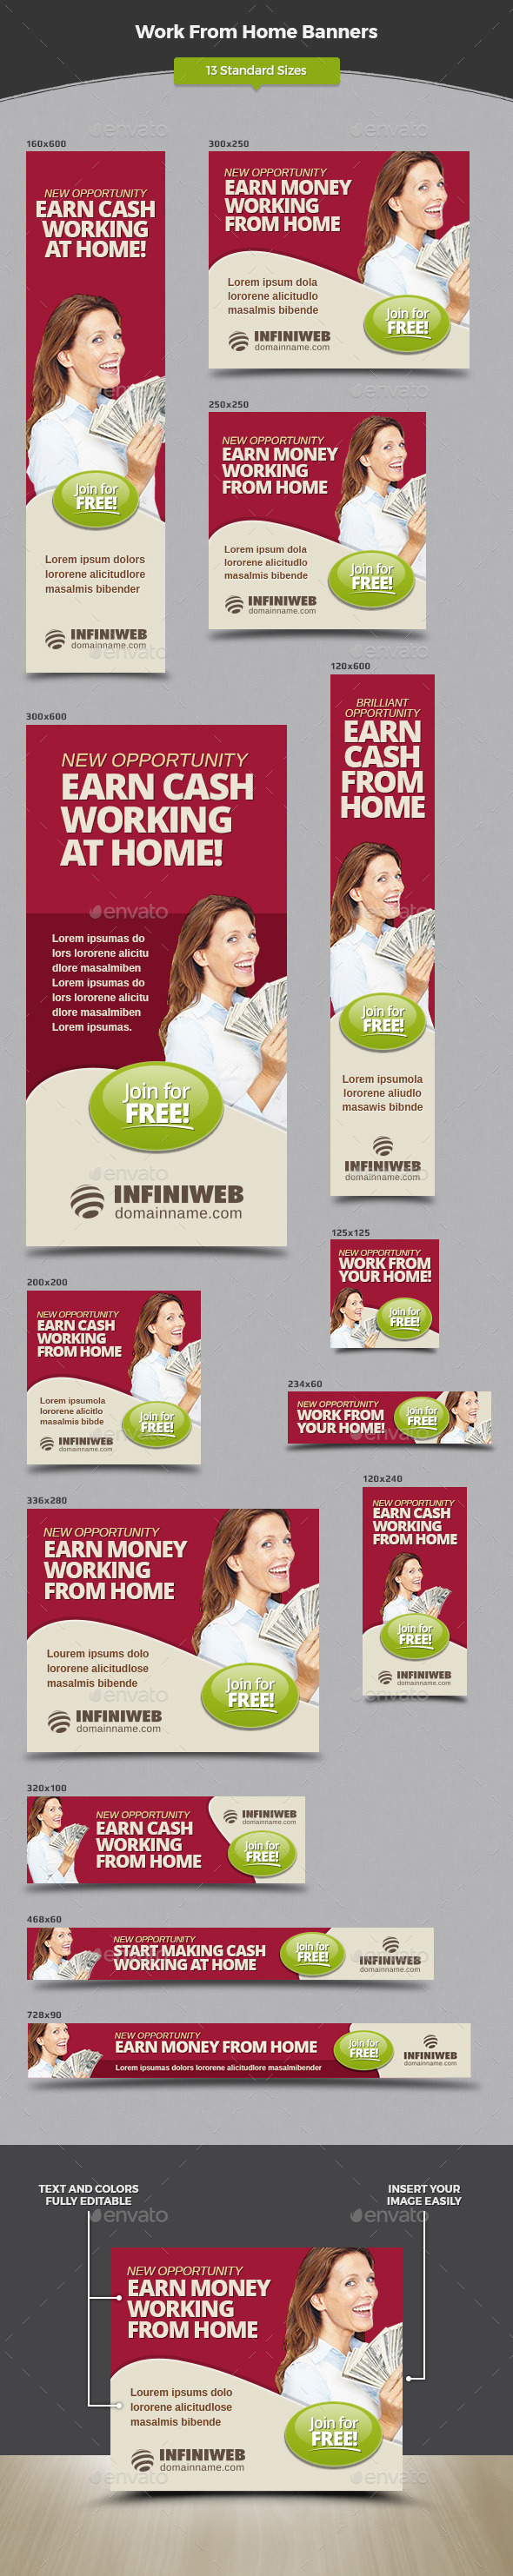 Work From Home Banners - Banners & Ads Web Elements